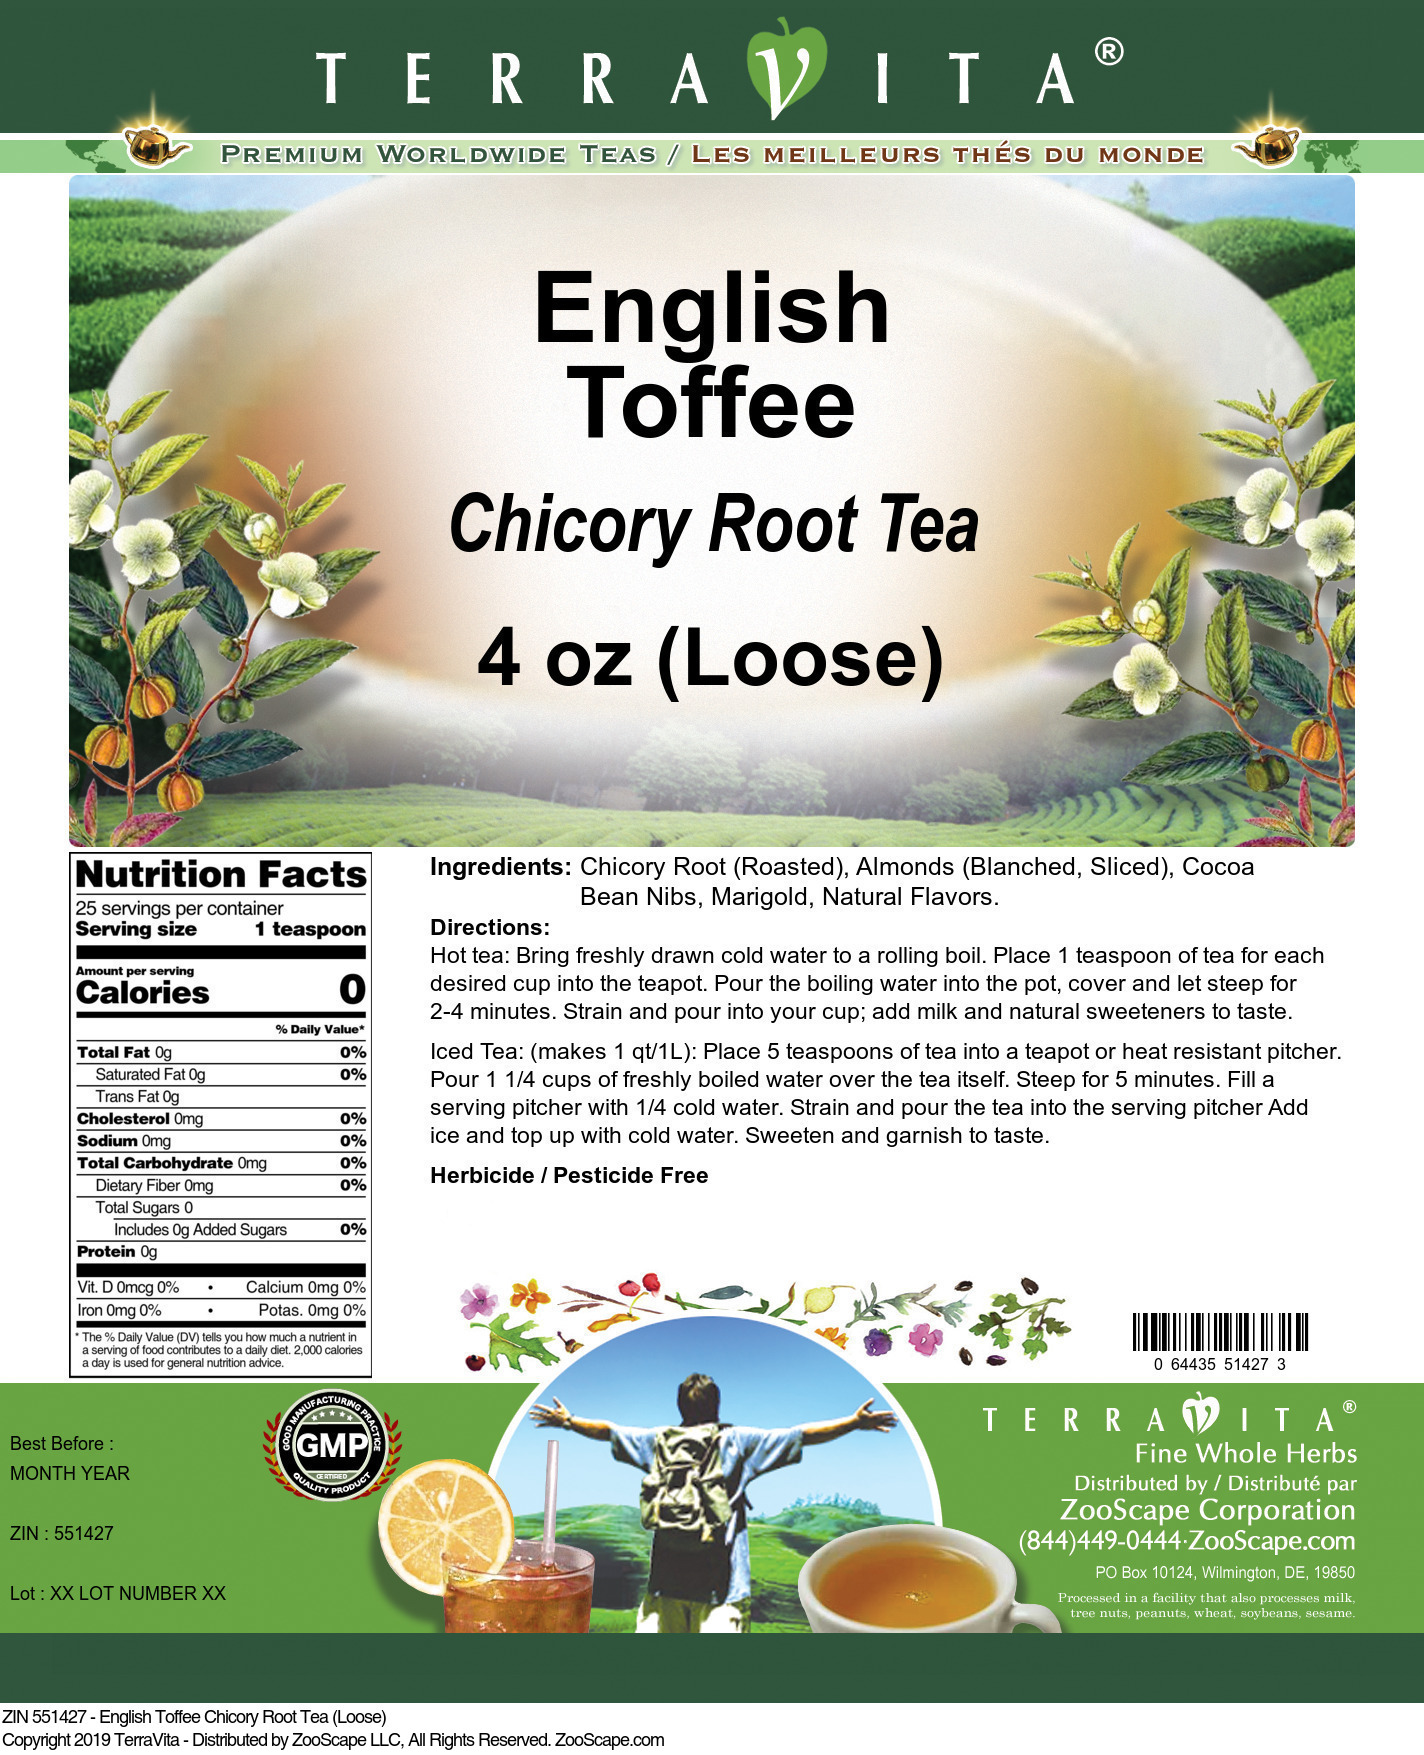 English Toffee Chicory Root Tea (Loose)